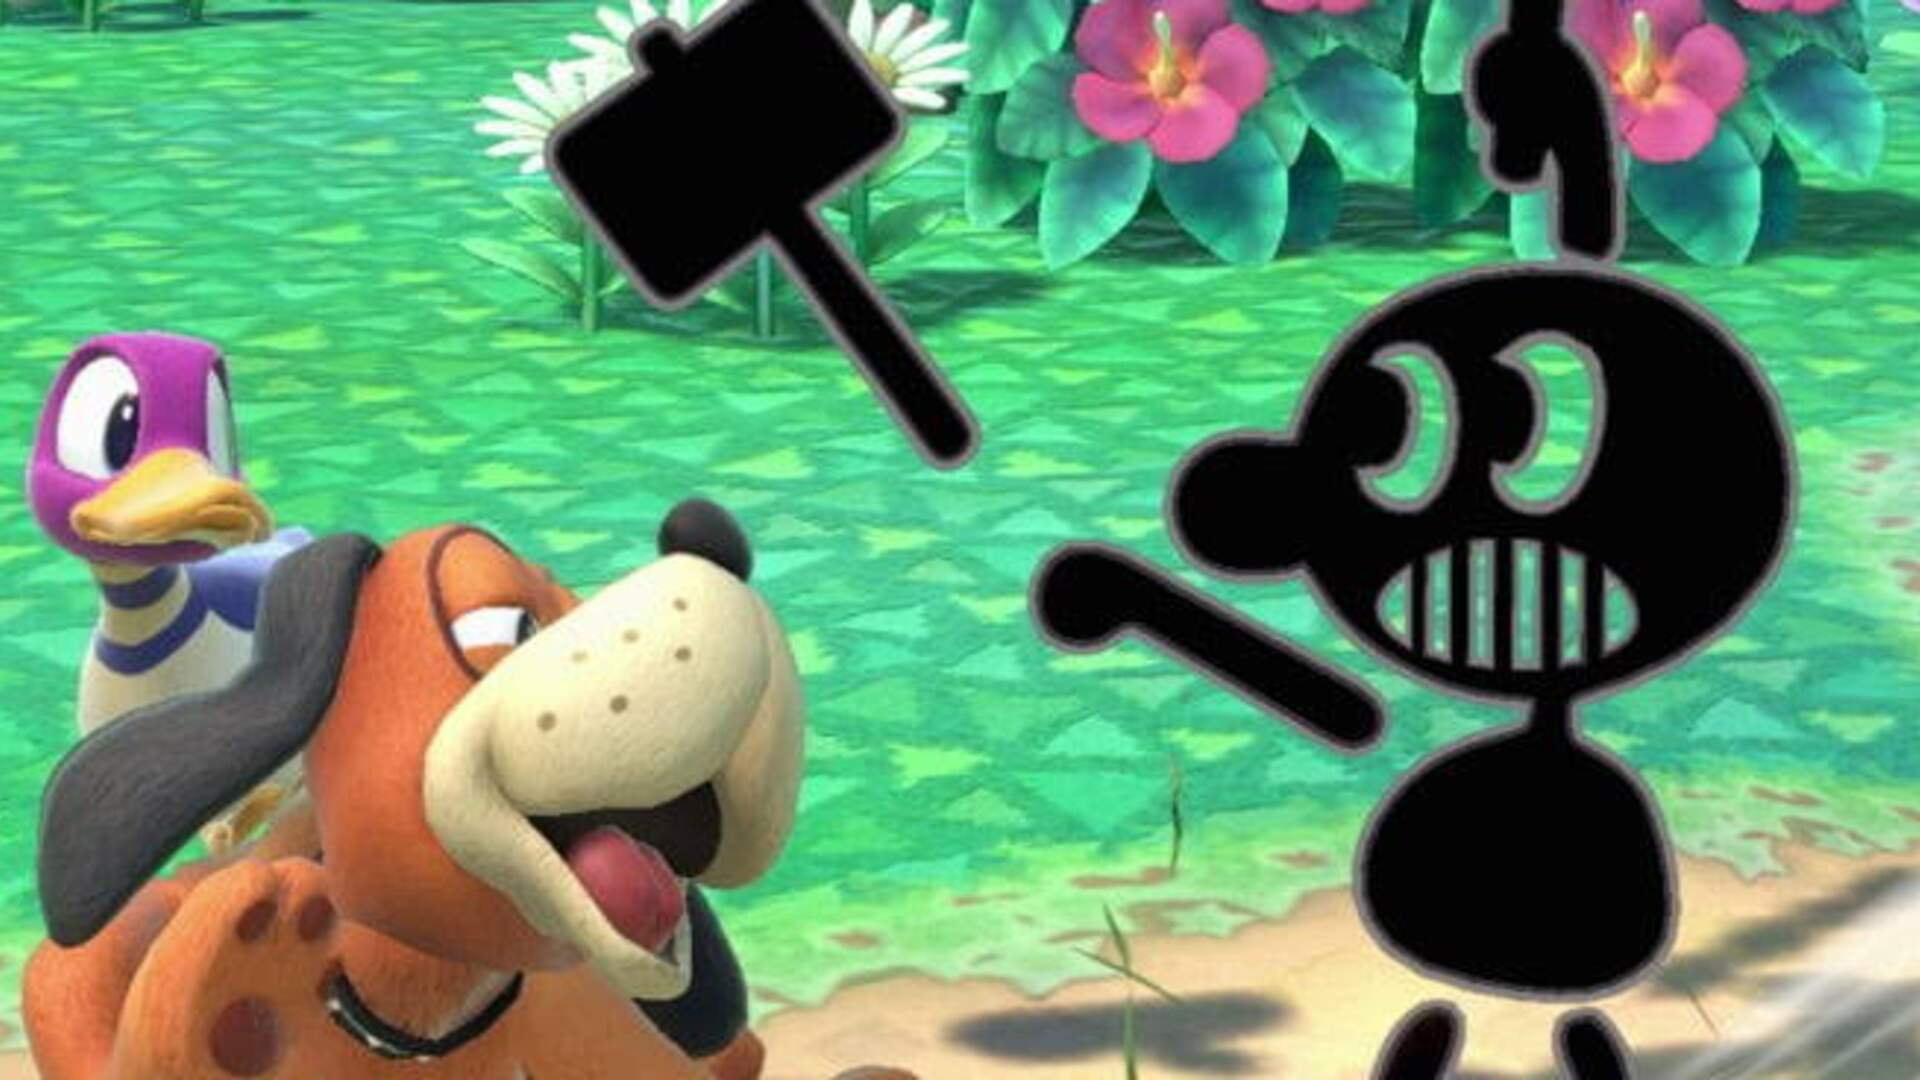 Smash Bros. Ultimate Dropping Racist Native American Game & Watch Image Following Outcry